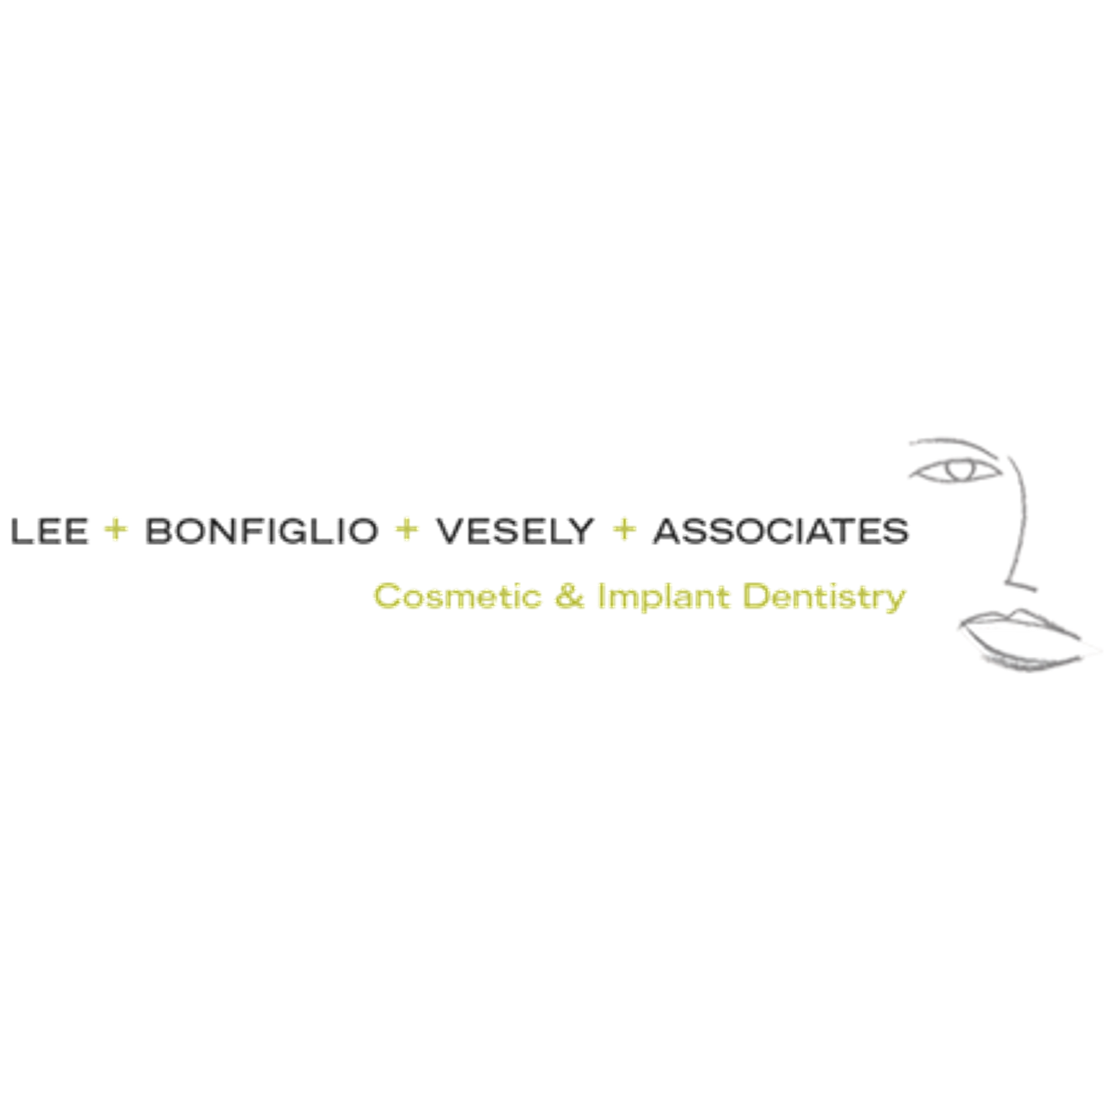 Drs. Lee, Bonfiglio, Vesely, & Associates